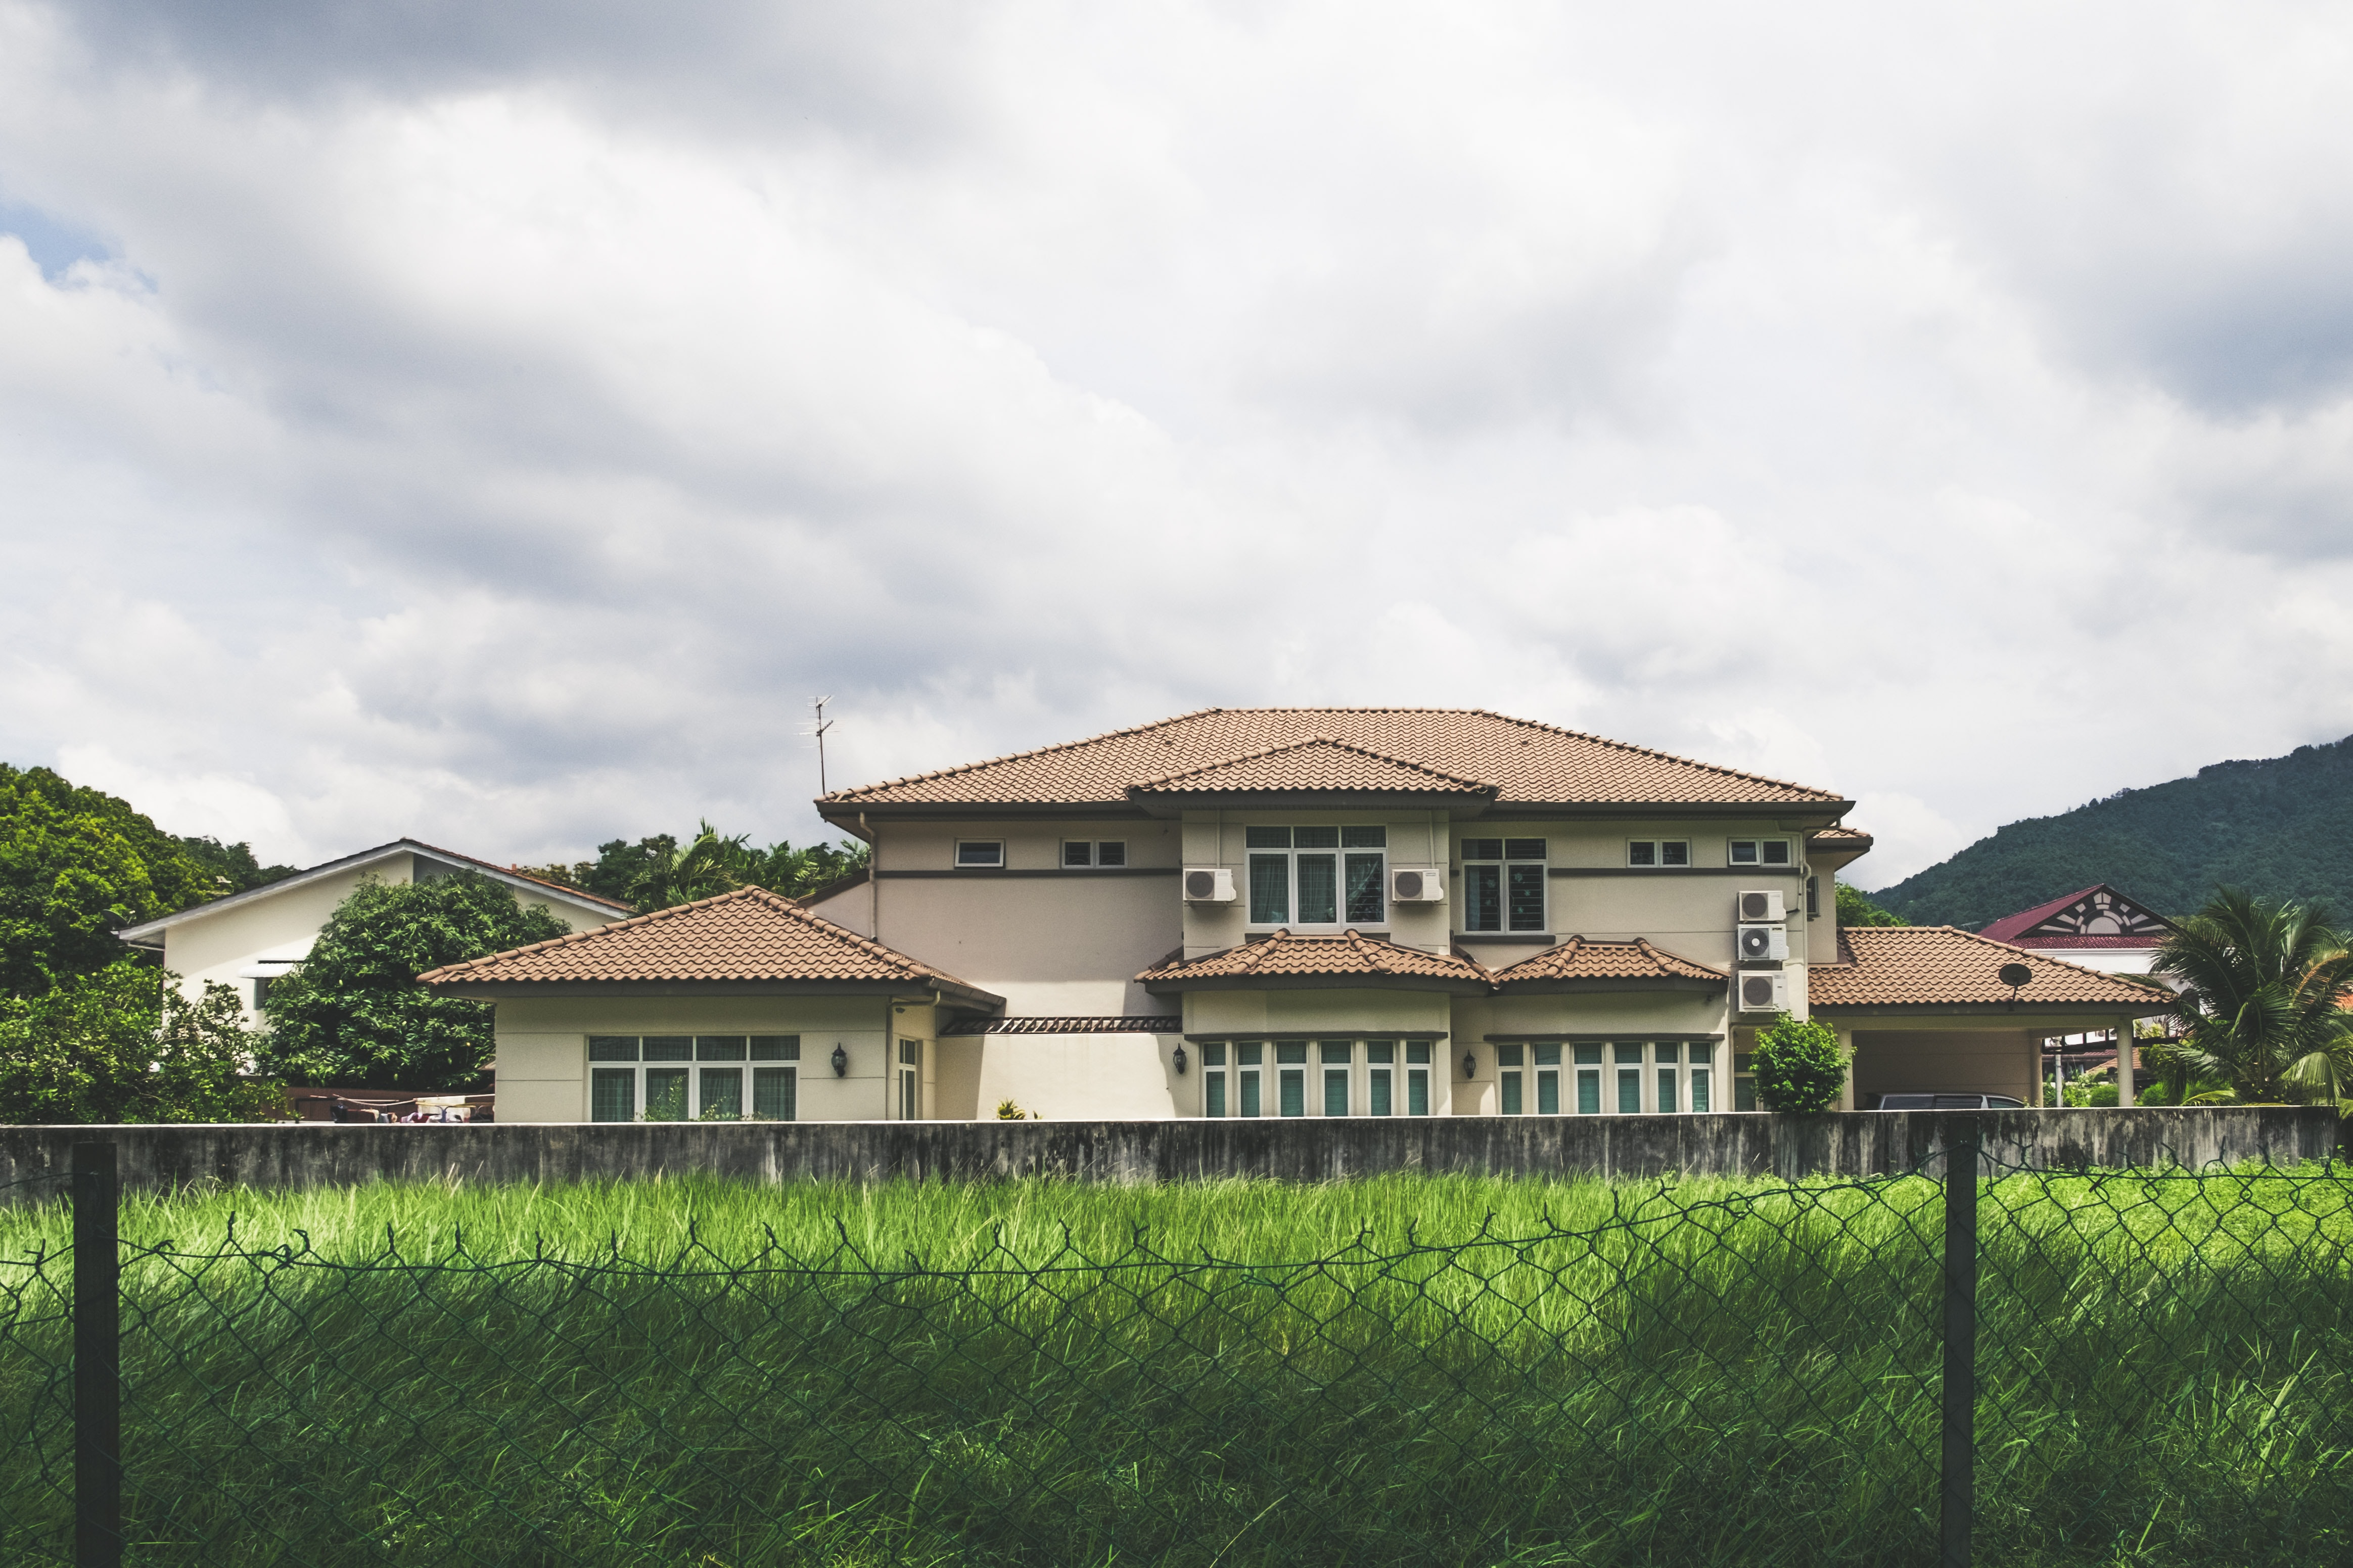 Large fenced-in house with a green grass lawn and clouds in the sky